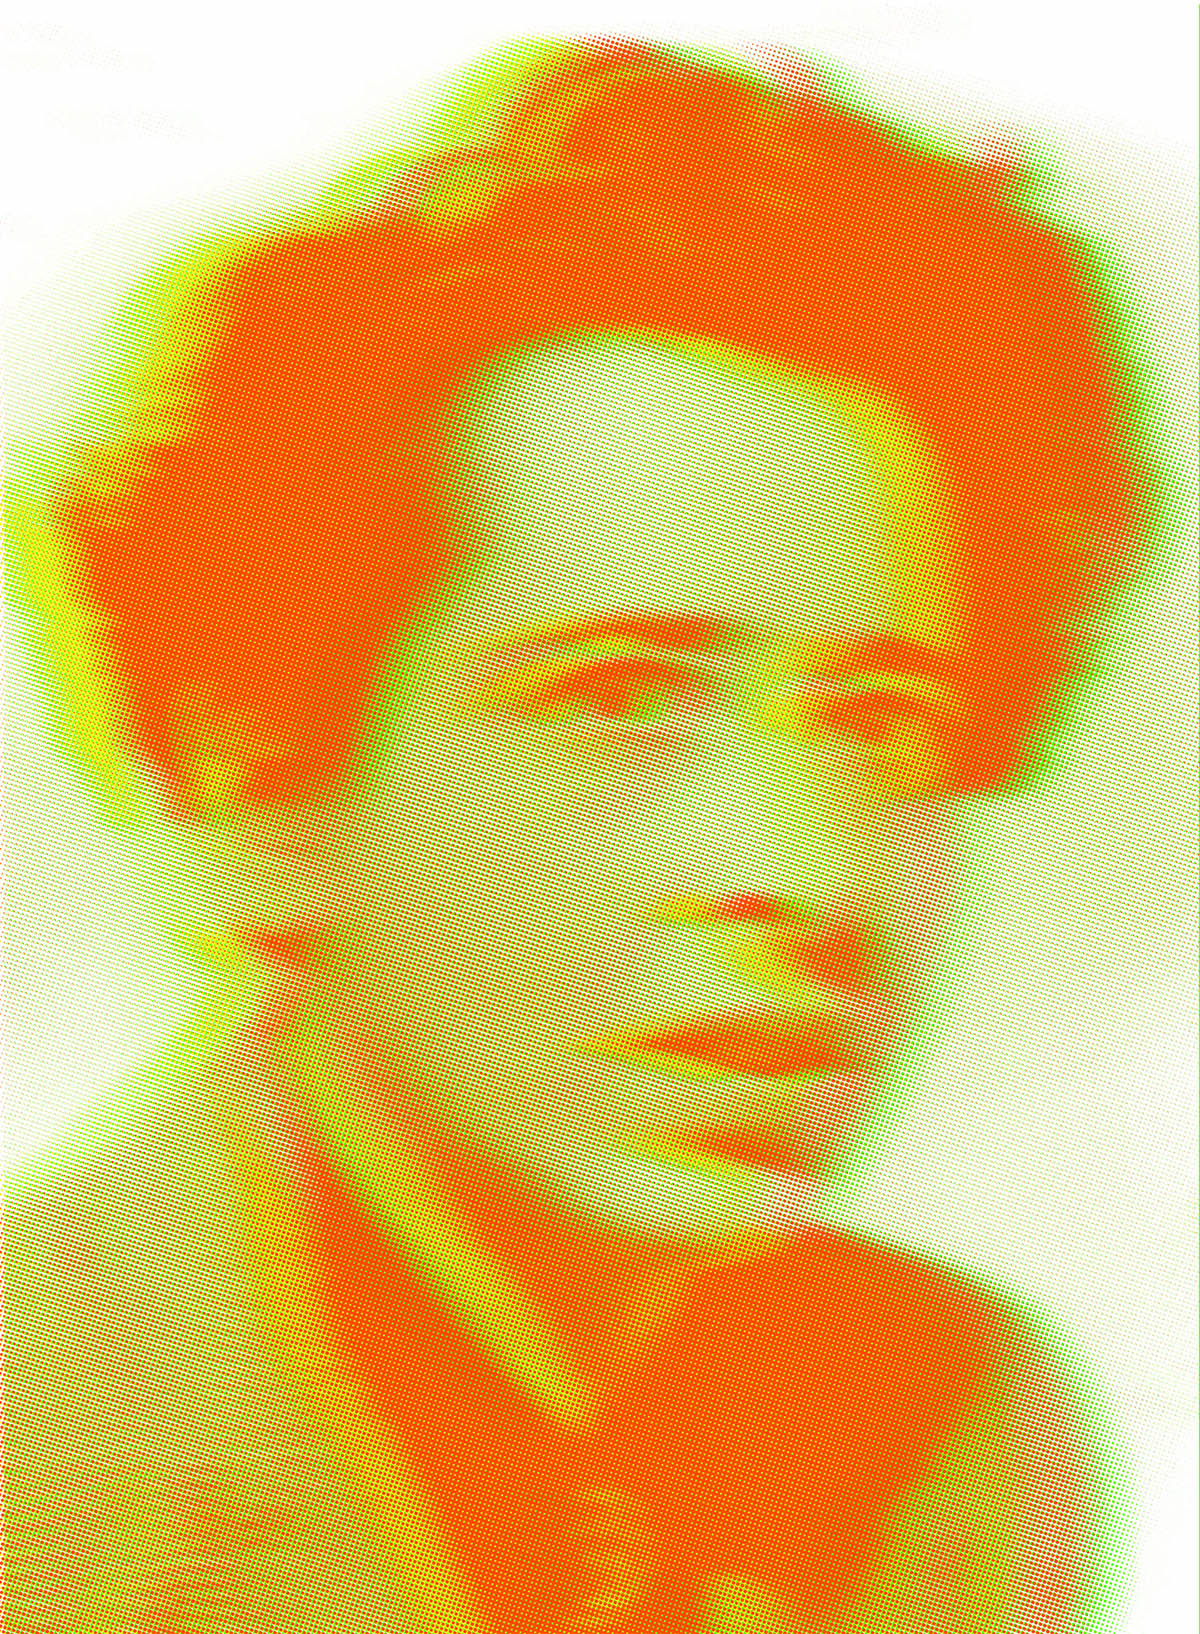 [Post-Truth and Politics: Departing from the Thought of Hannah Arendt]